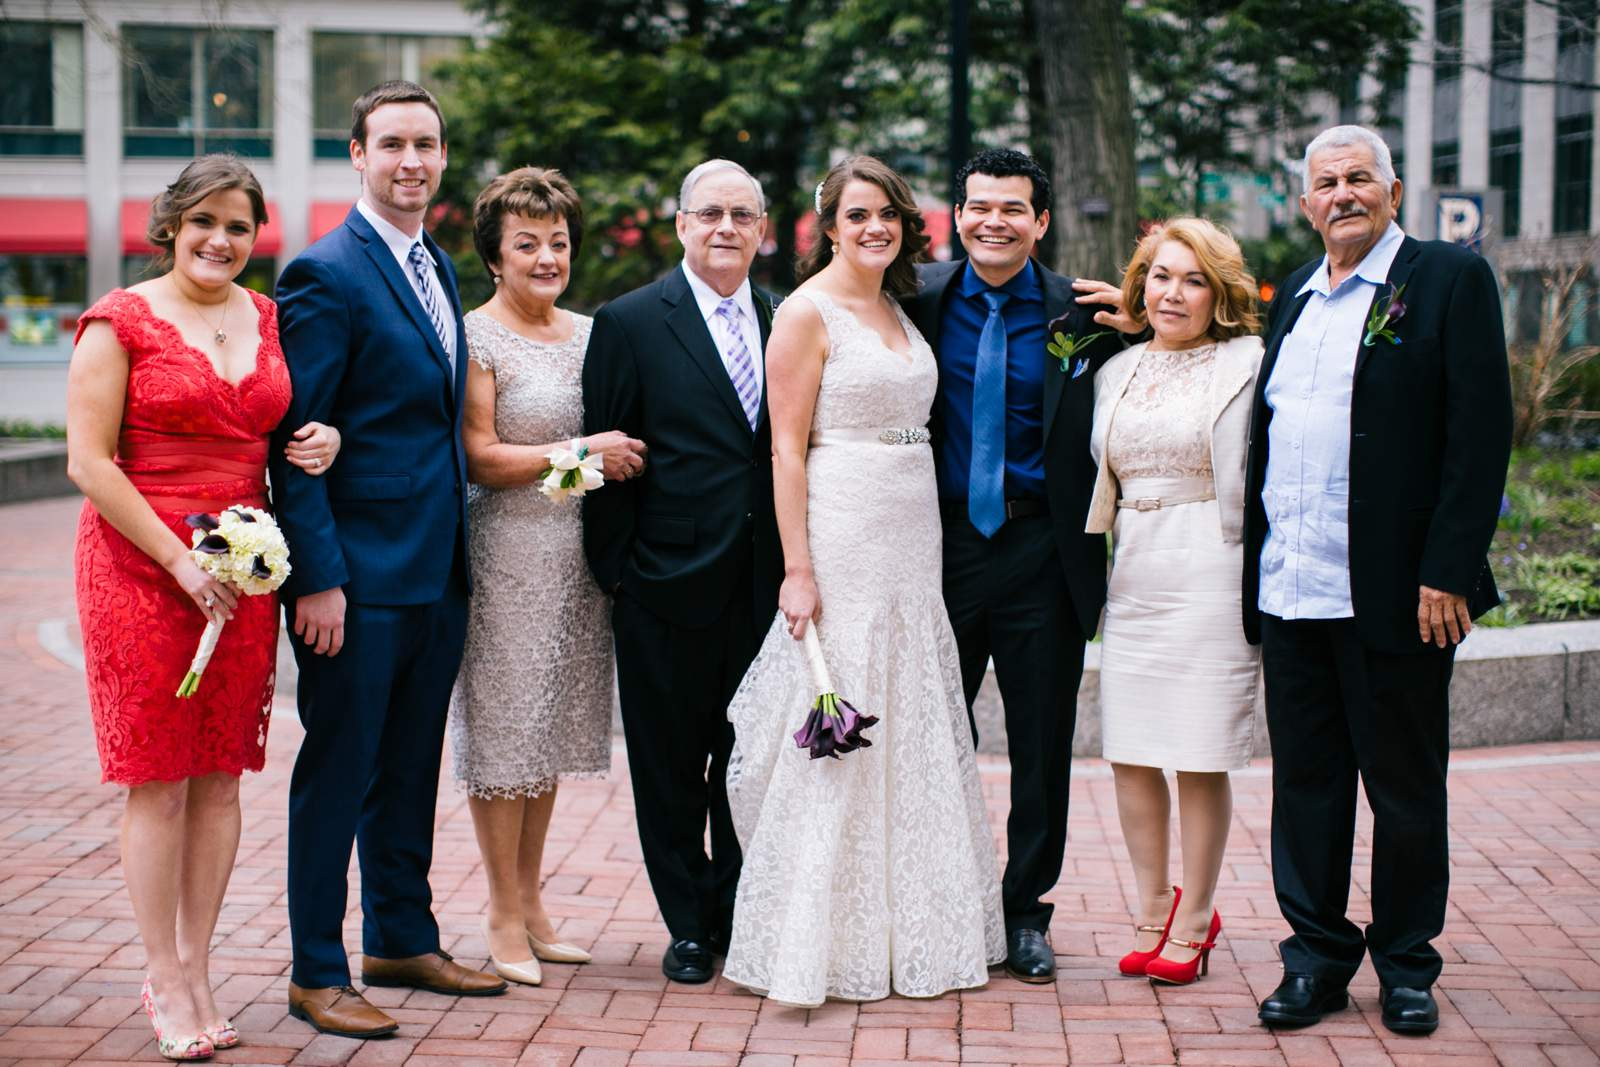 Boston Wedding Photography, getting ready, Langham hotel, groom, bride, family, portraits